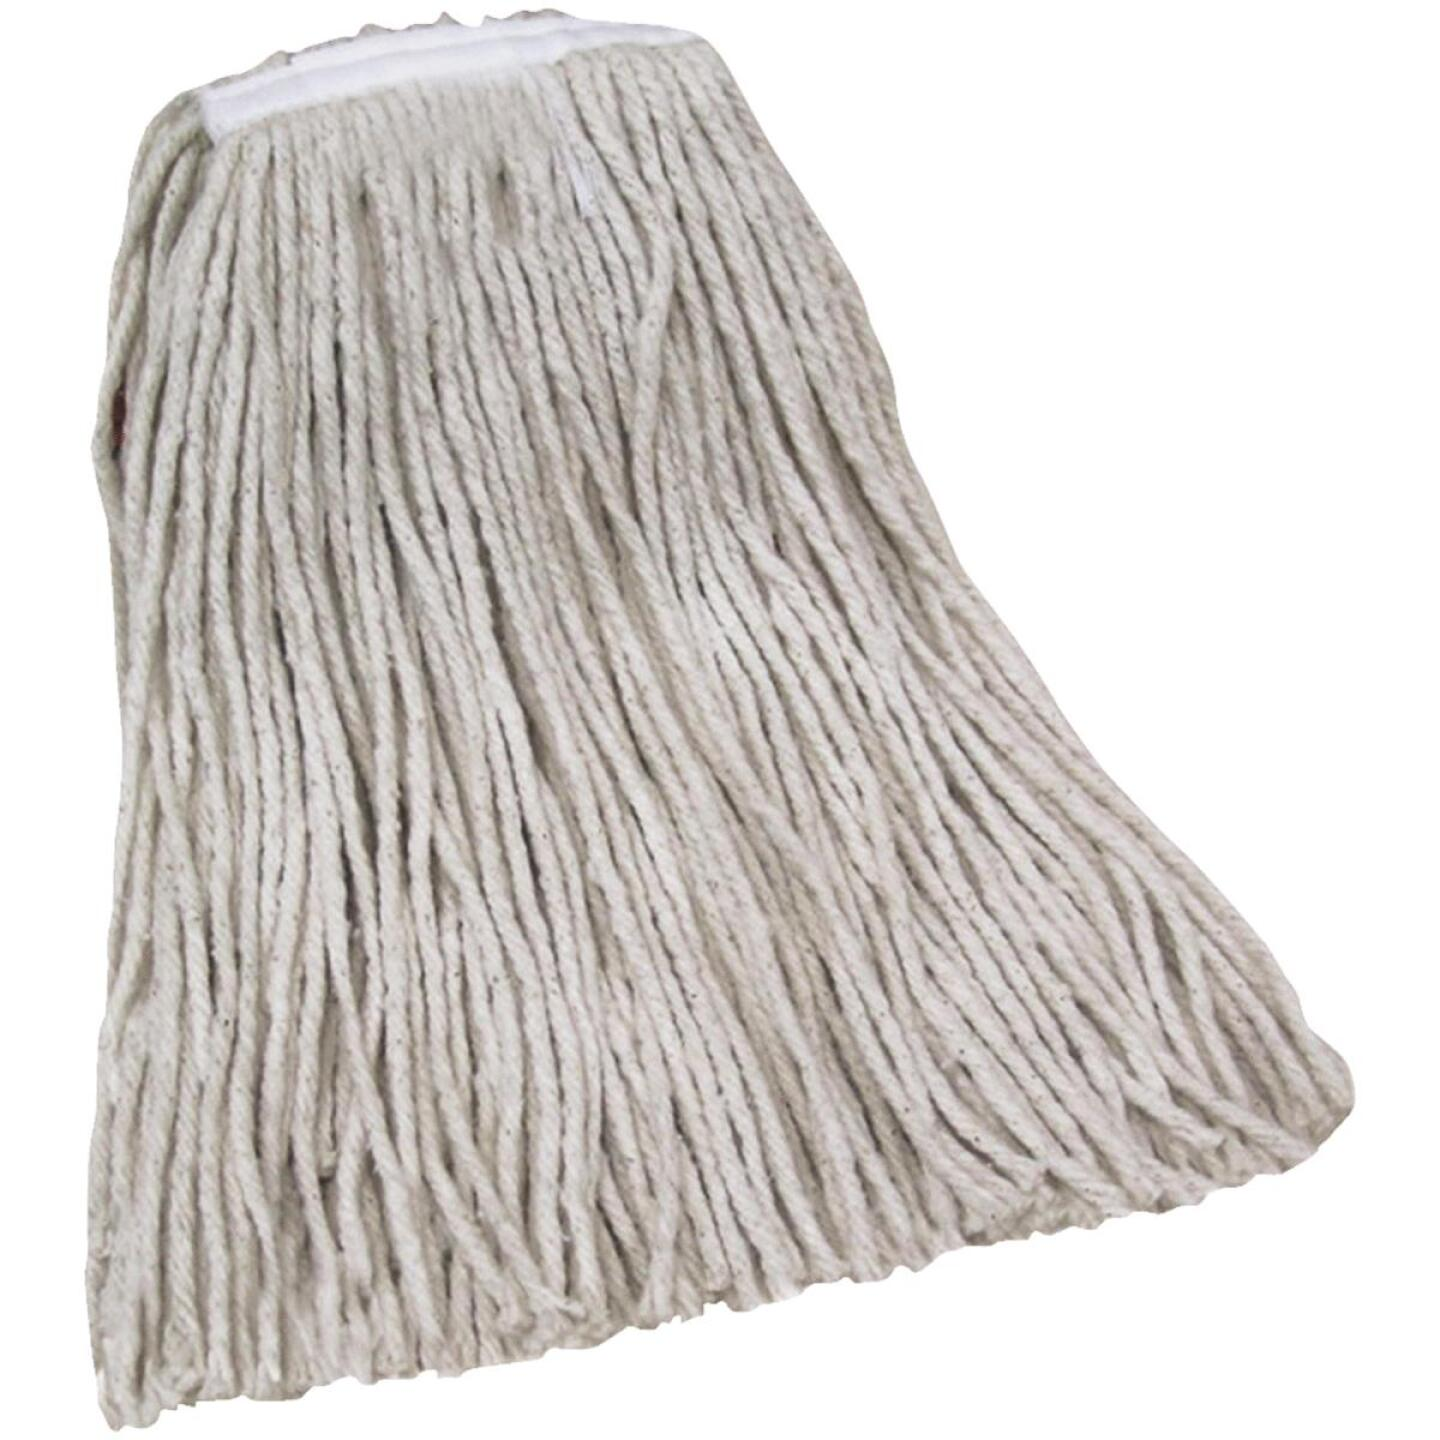 Nexstep Commercial 32 Oz. General Purpose MaxiCotton Mop Head Image 1